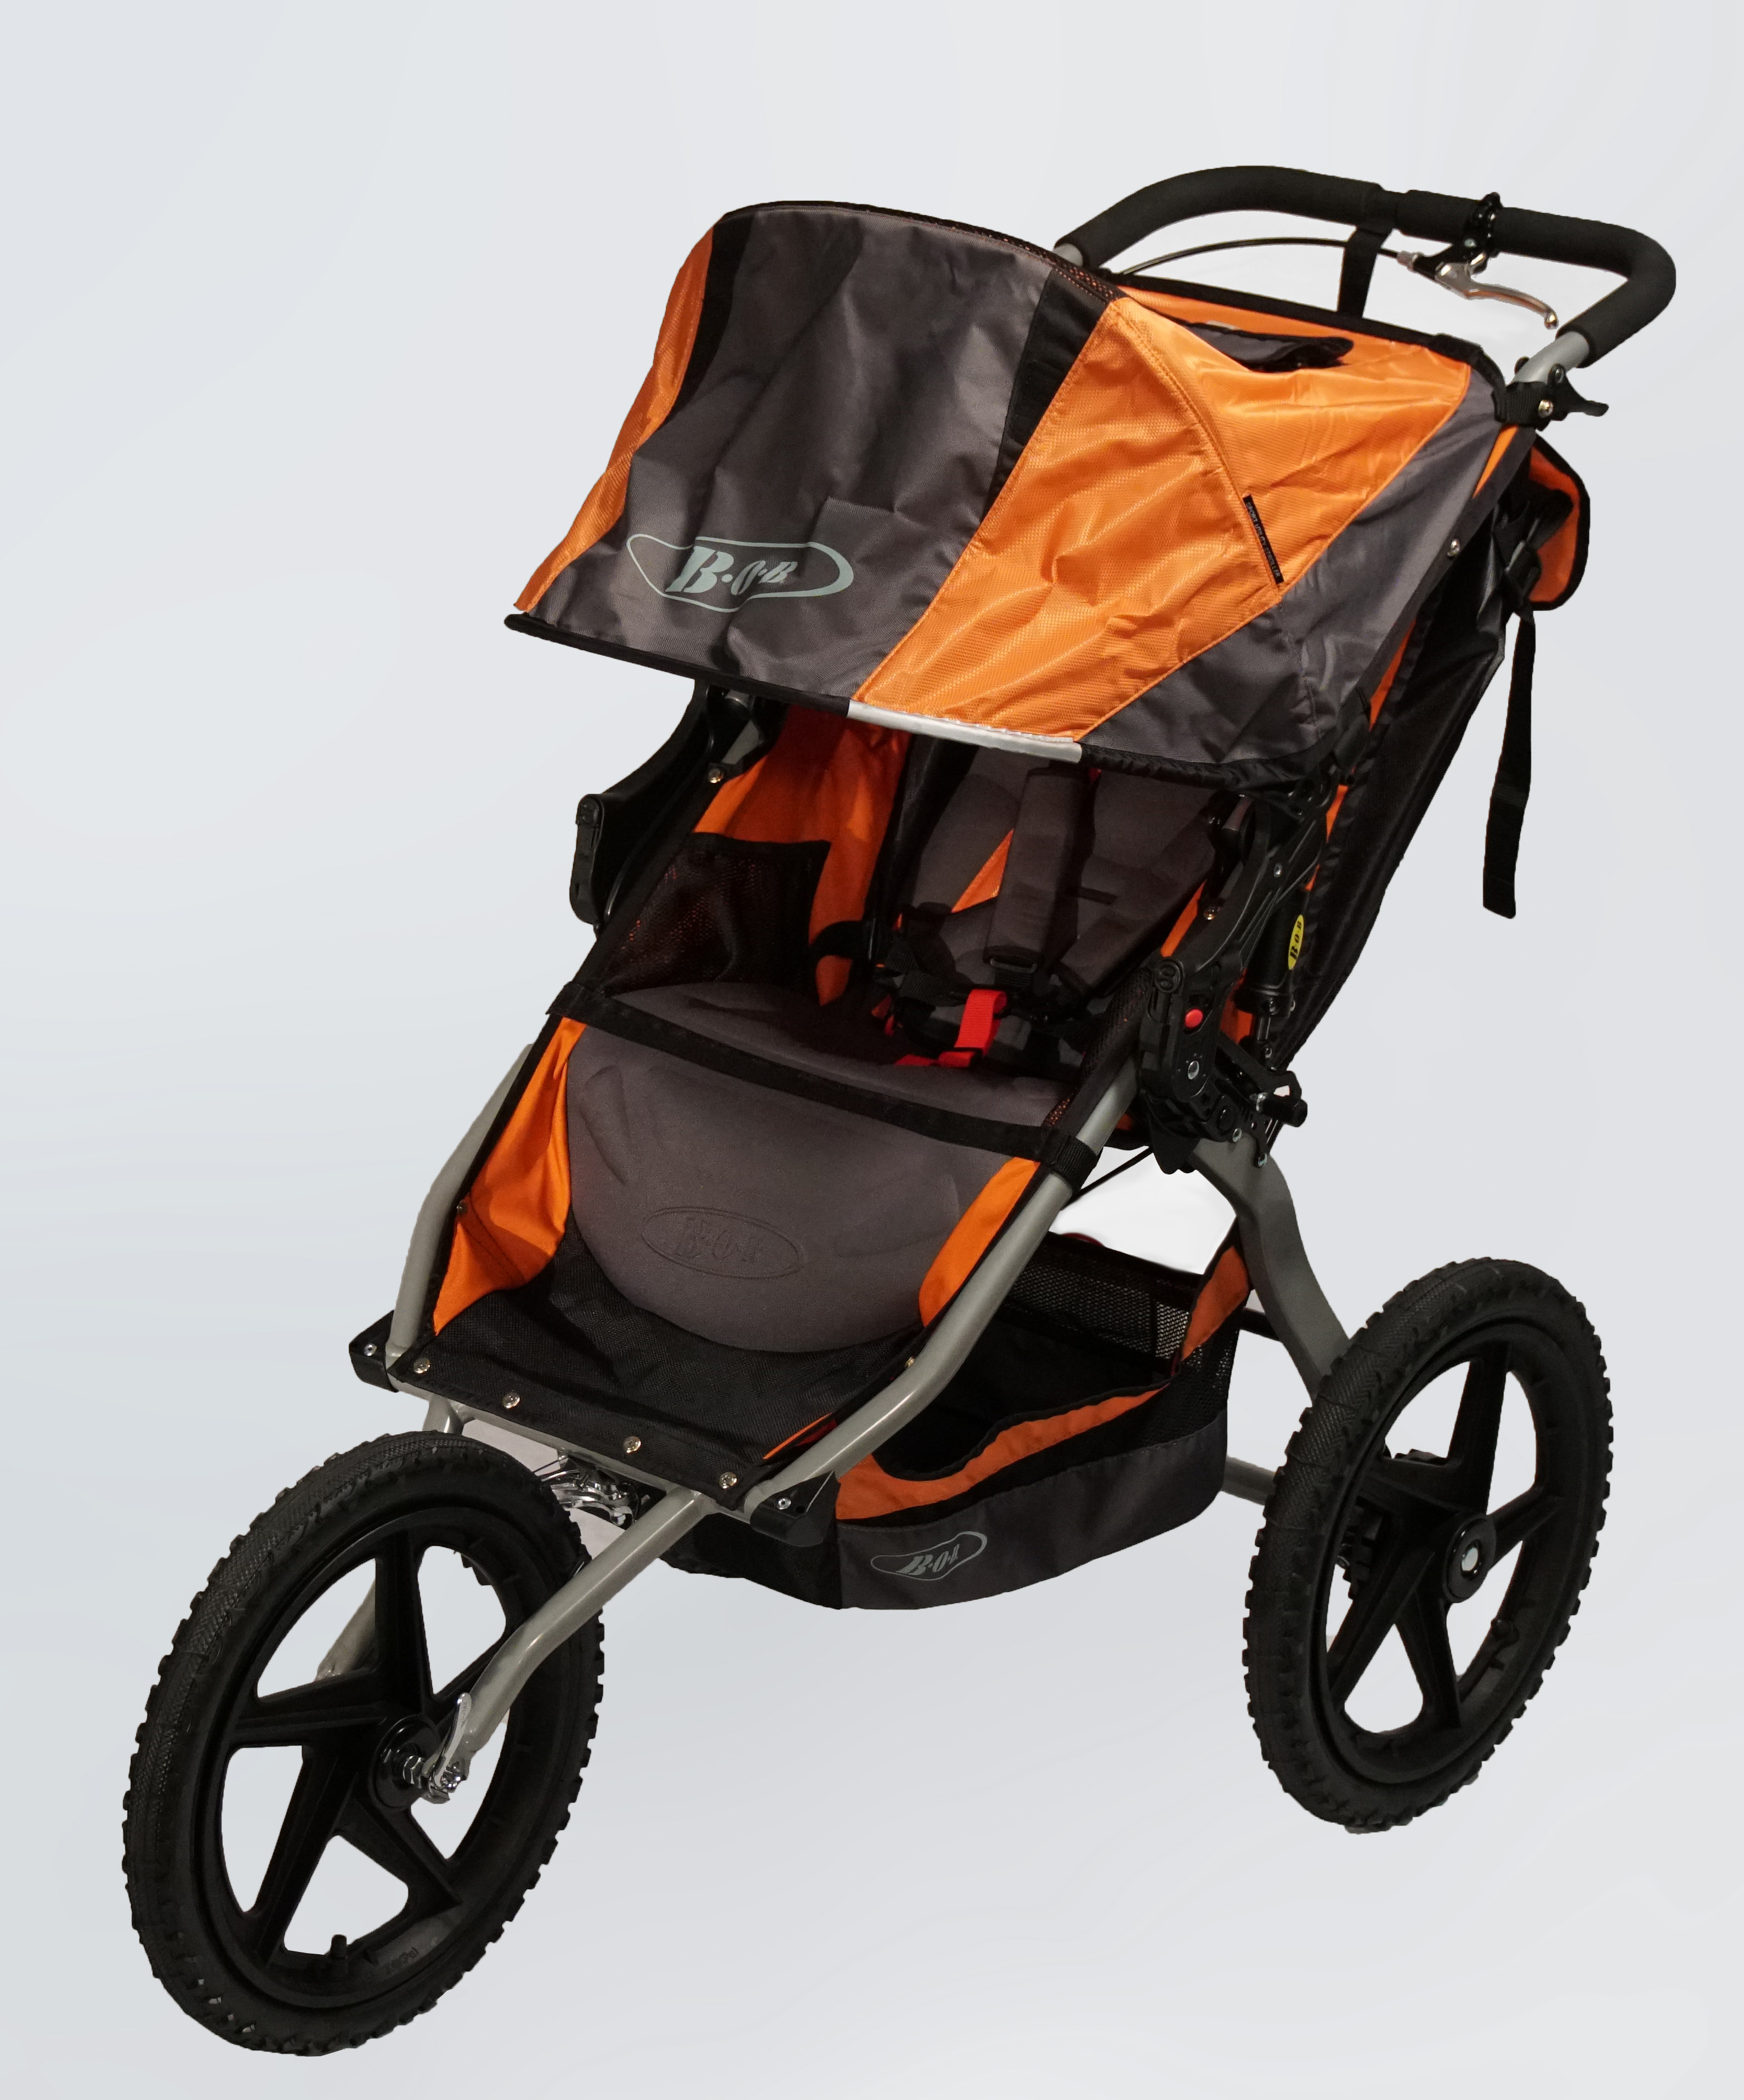 CPSC Sues Britax Over Hazardous Jogging Strollers; Action Prompted by Ongoing Harm to Children and Adults from Stroller Wheel Detachment